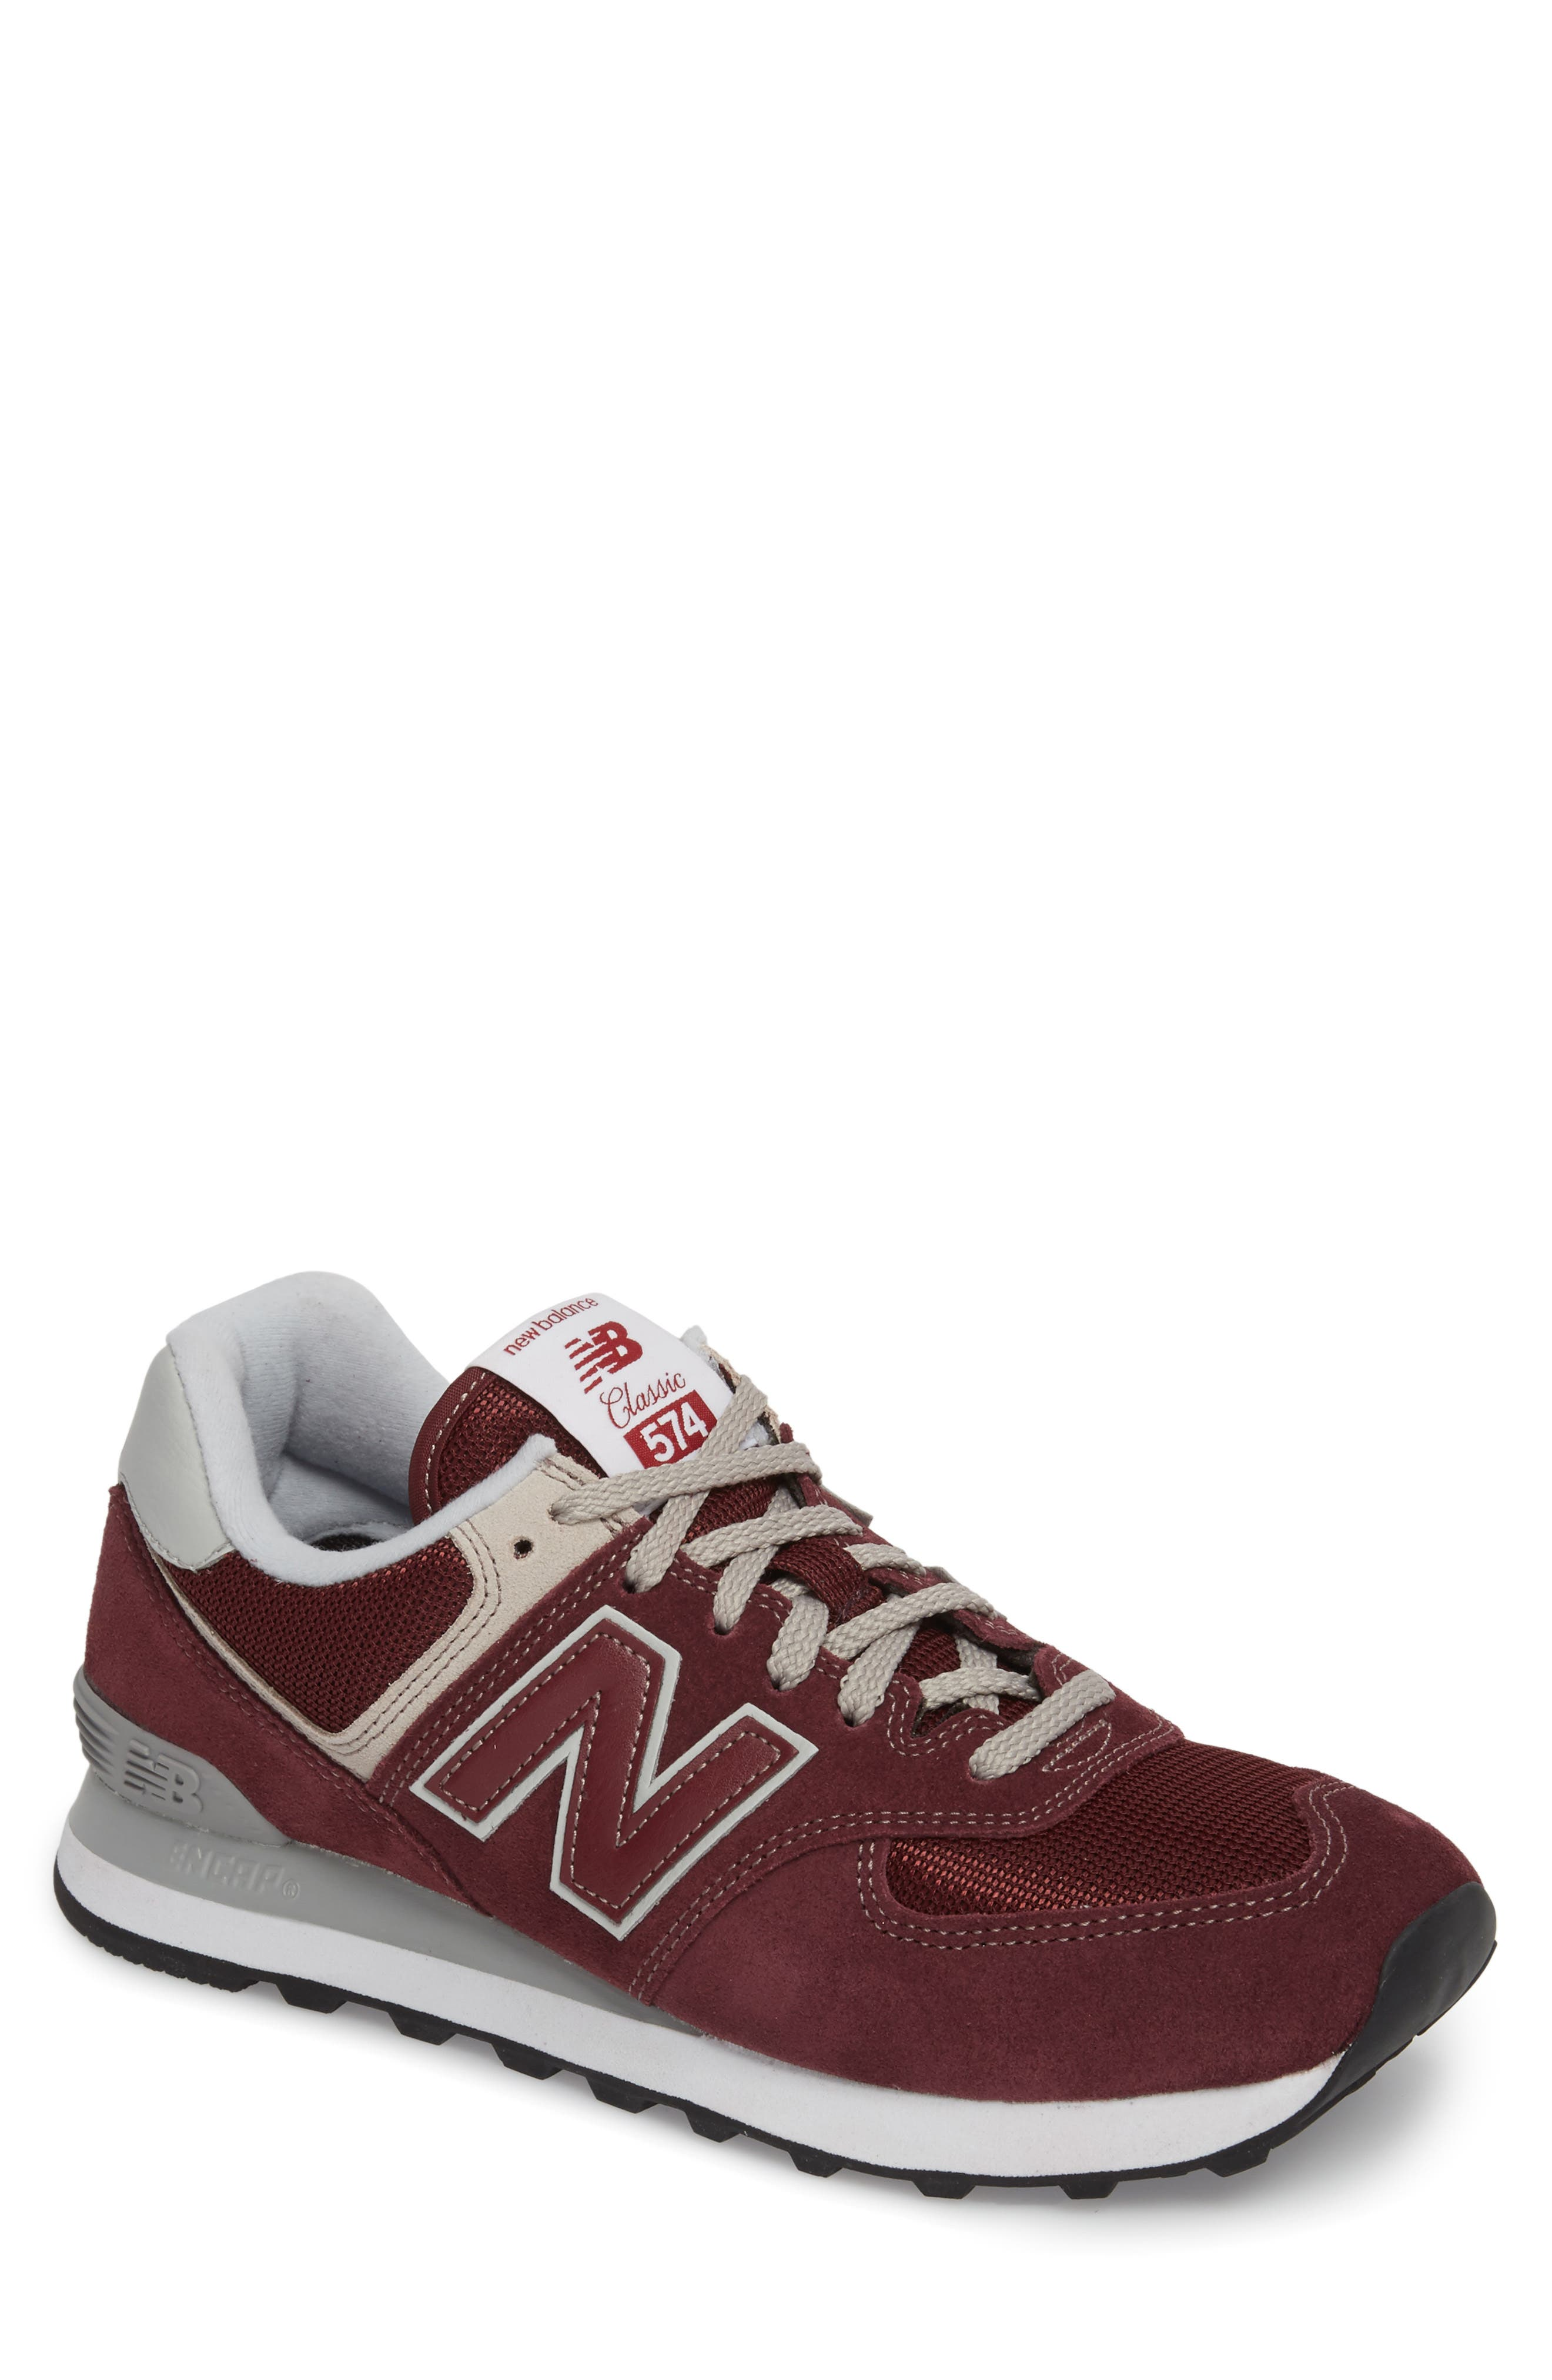 NEW BALANCE 574 Classic Sneaker, Main, color, BURGUNDY